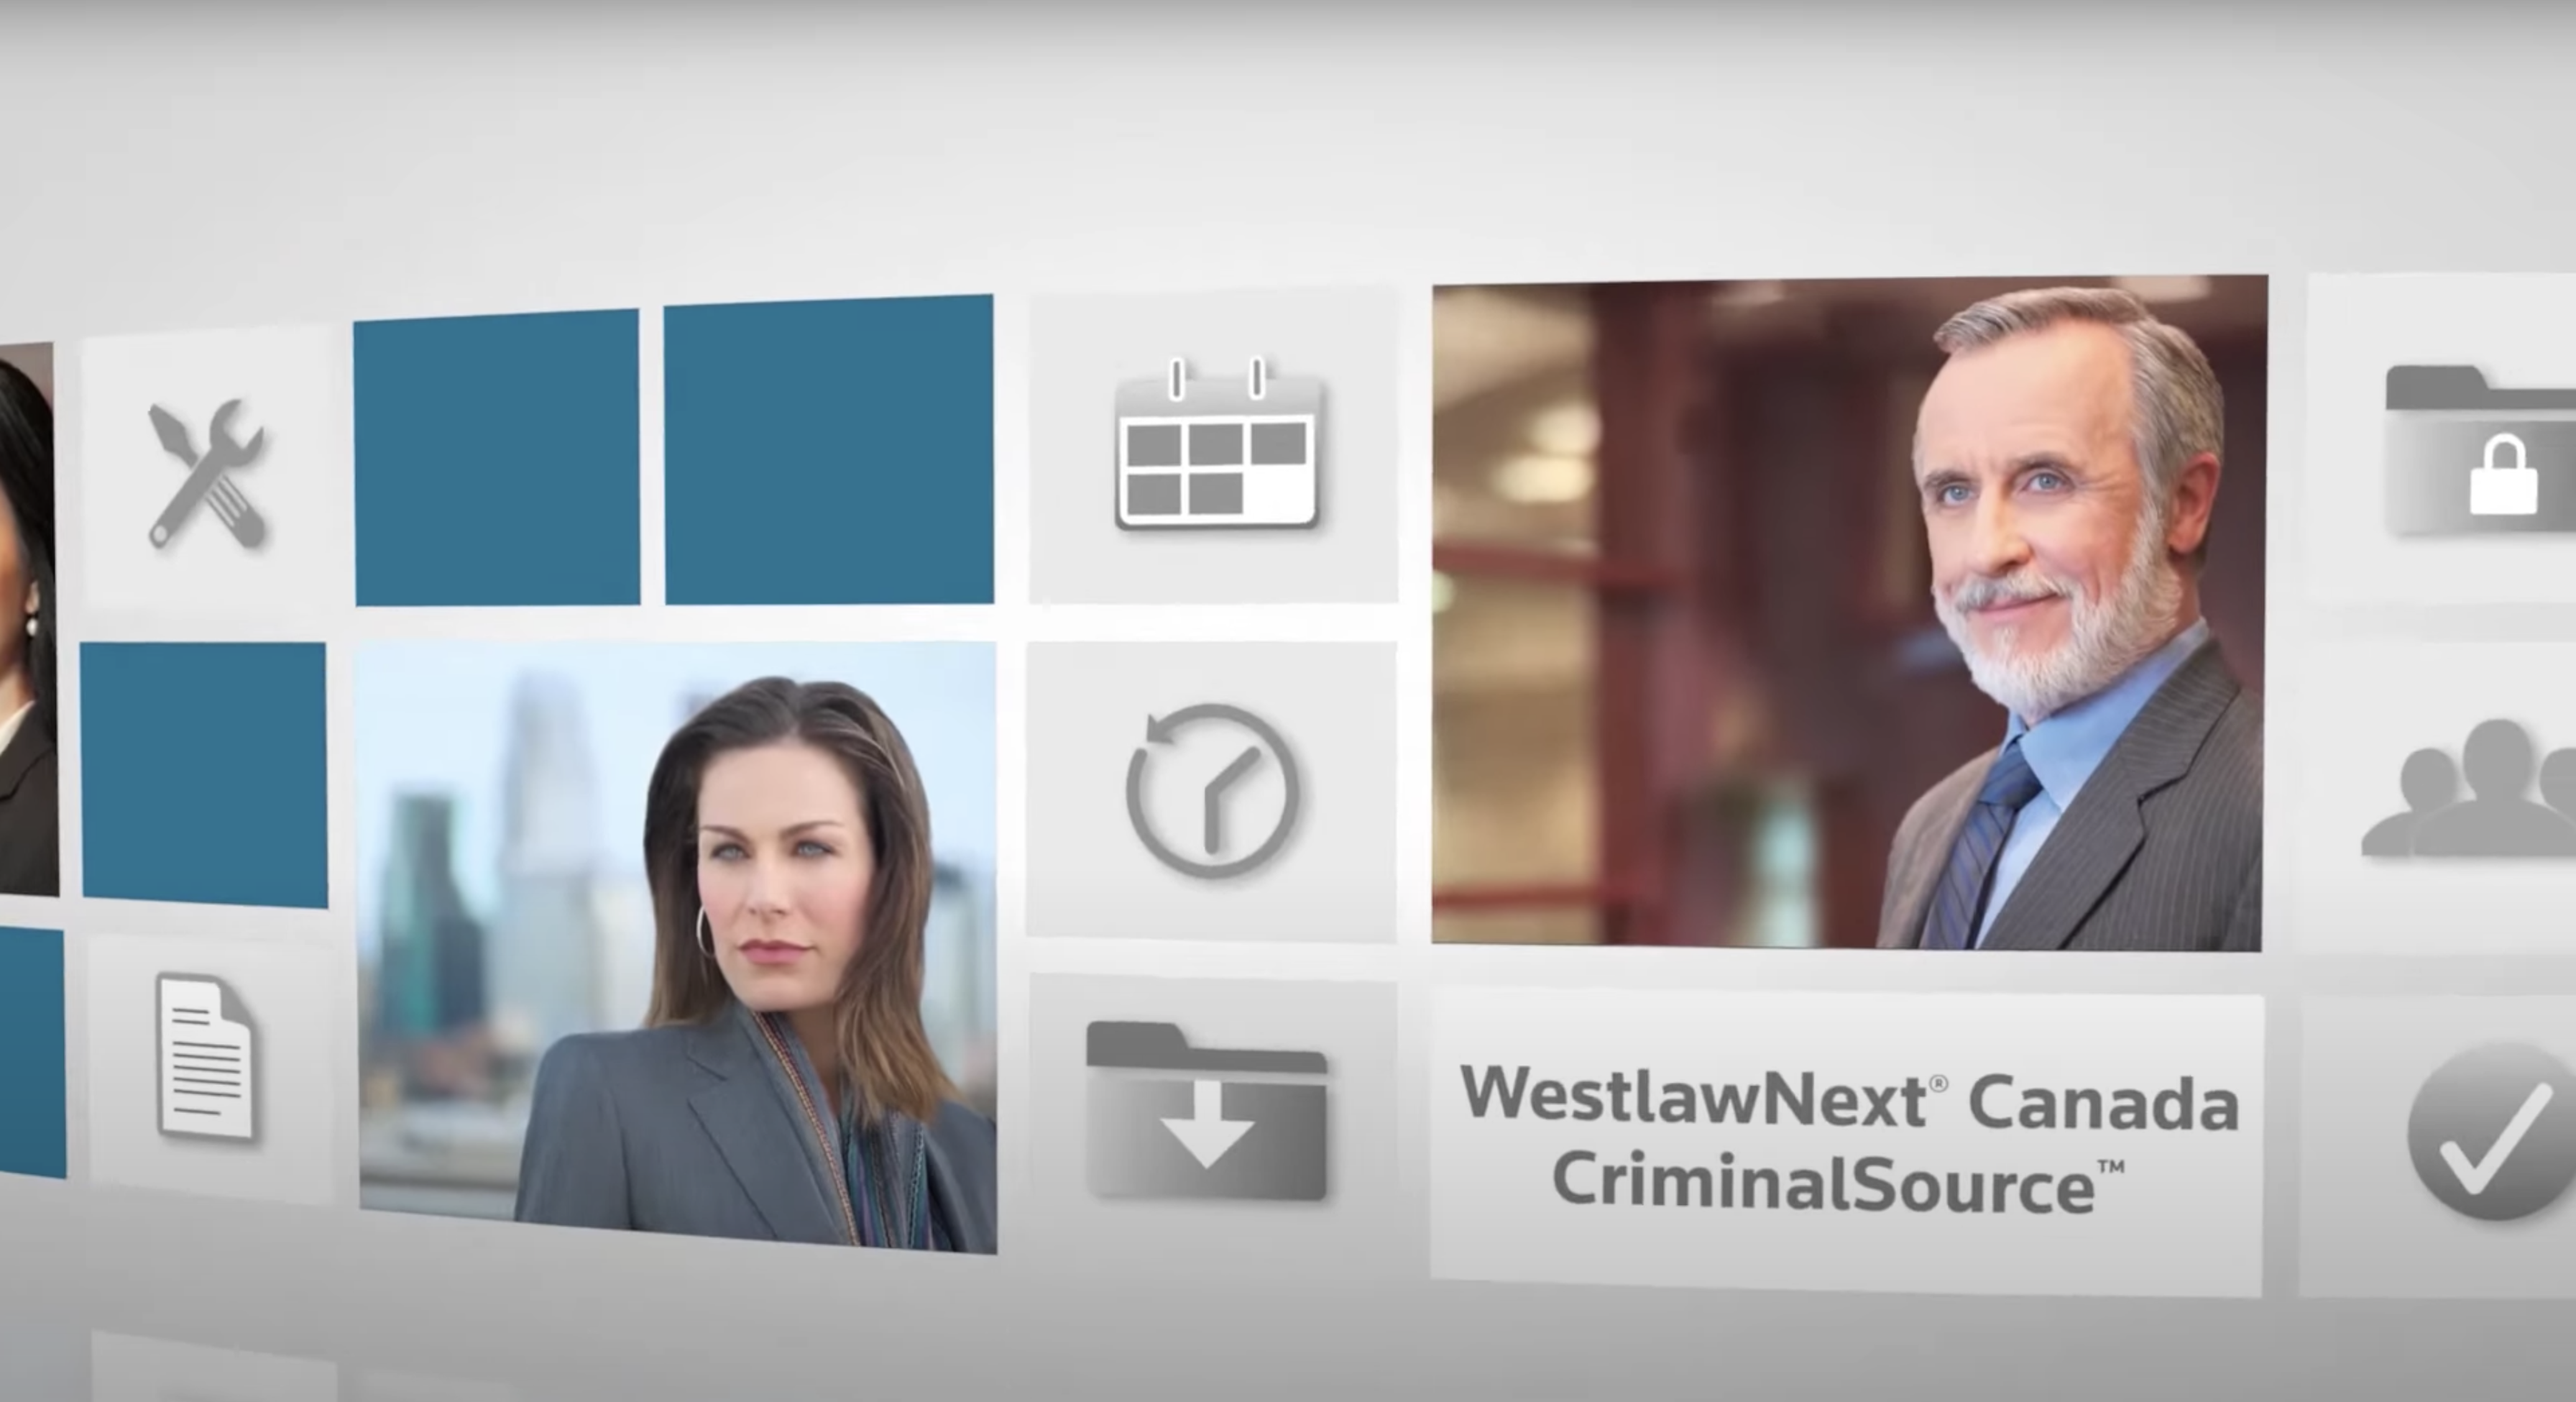 WestlawNext Canada CriminalSource video